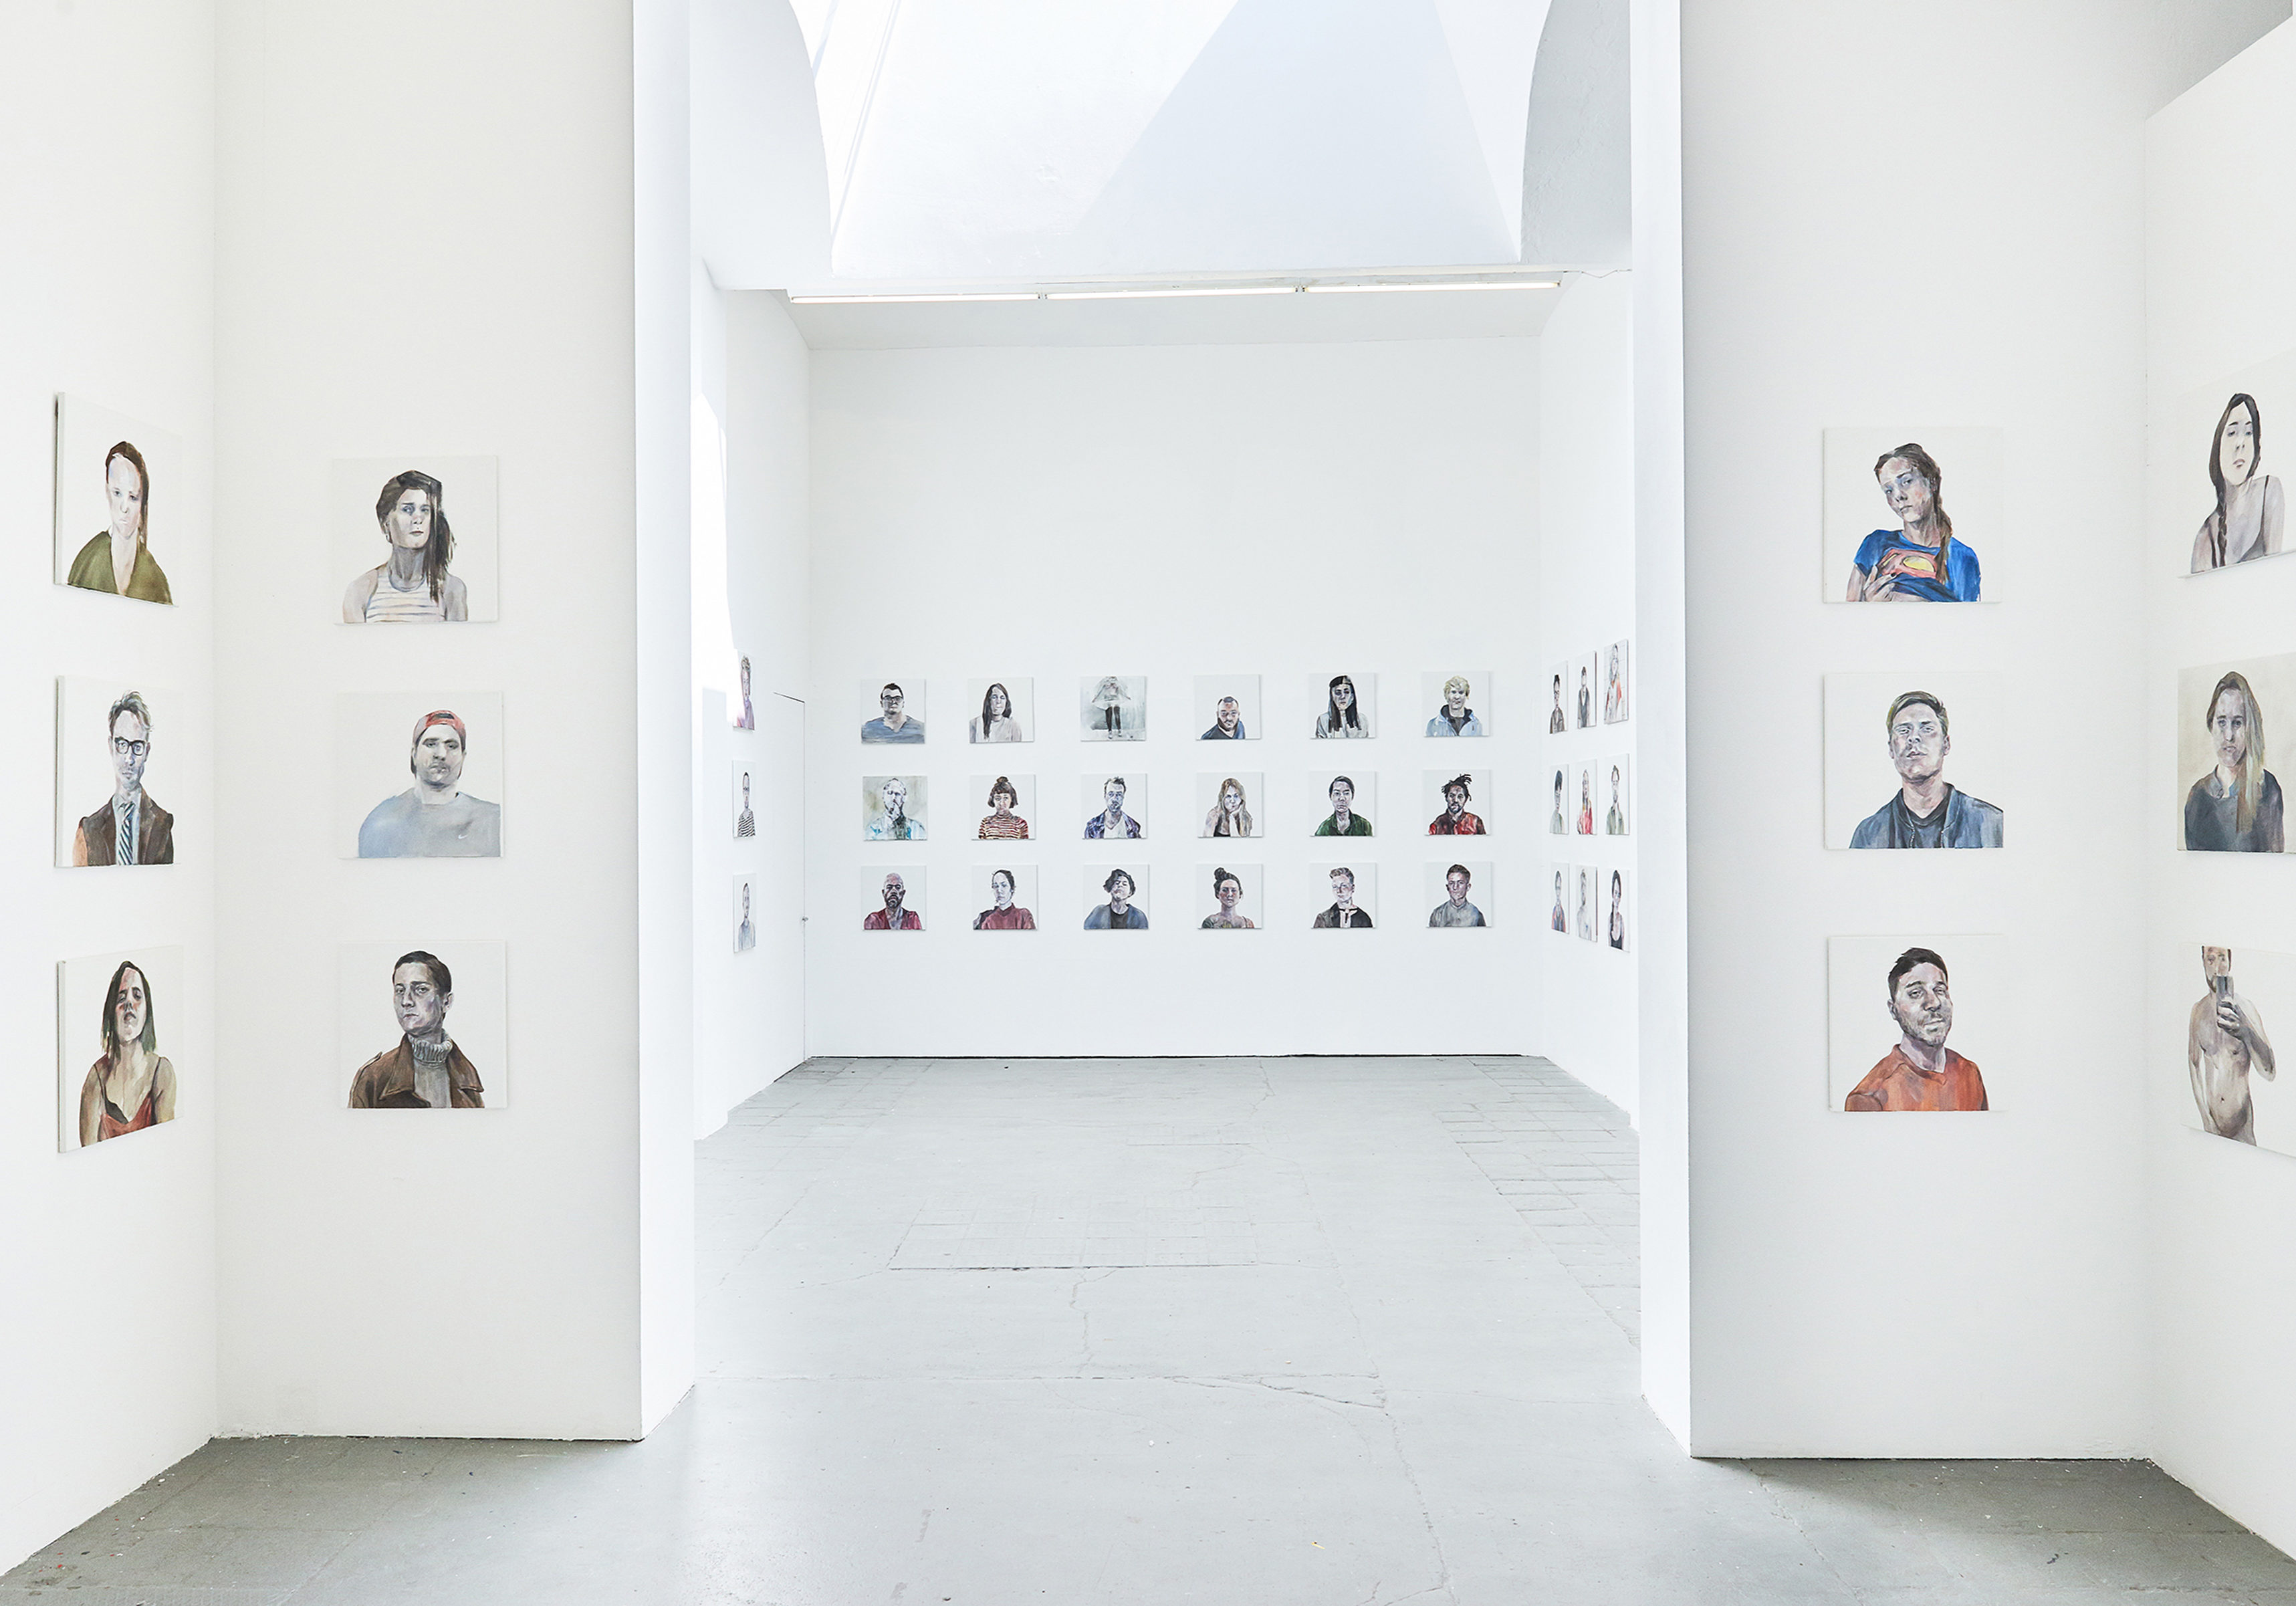 Ji-yeon Kim 100 PORTRAITS OF TINDER PROJECT